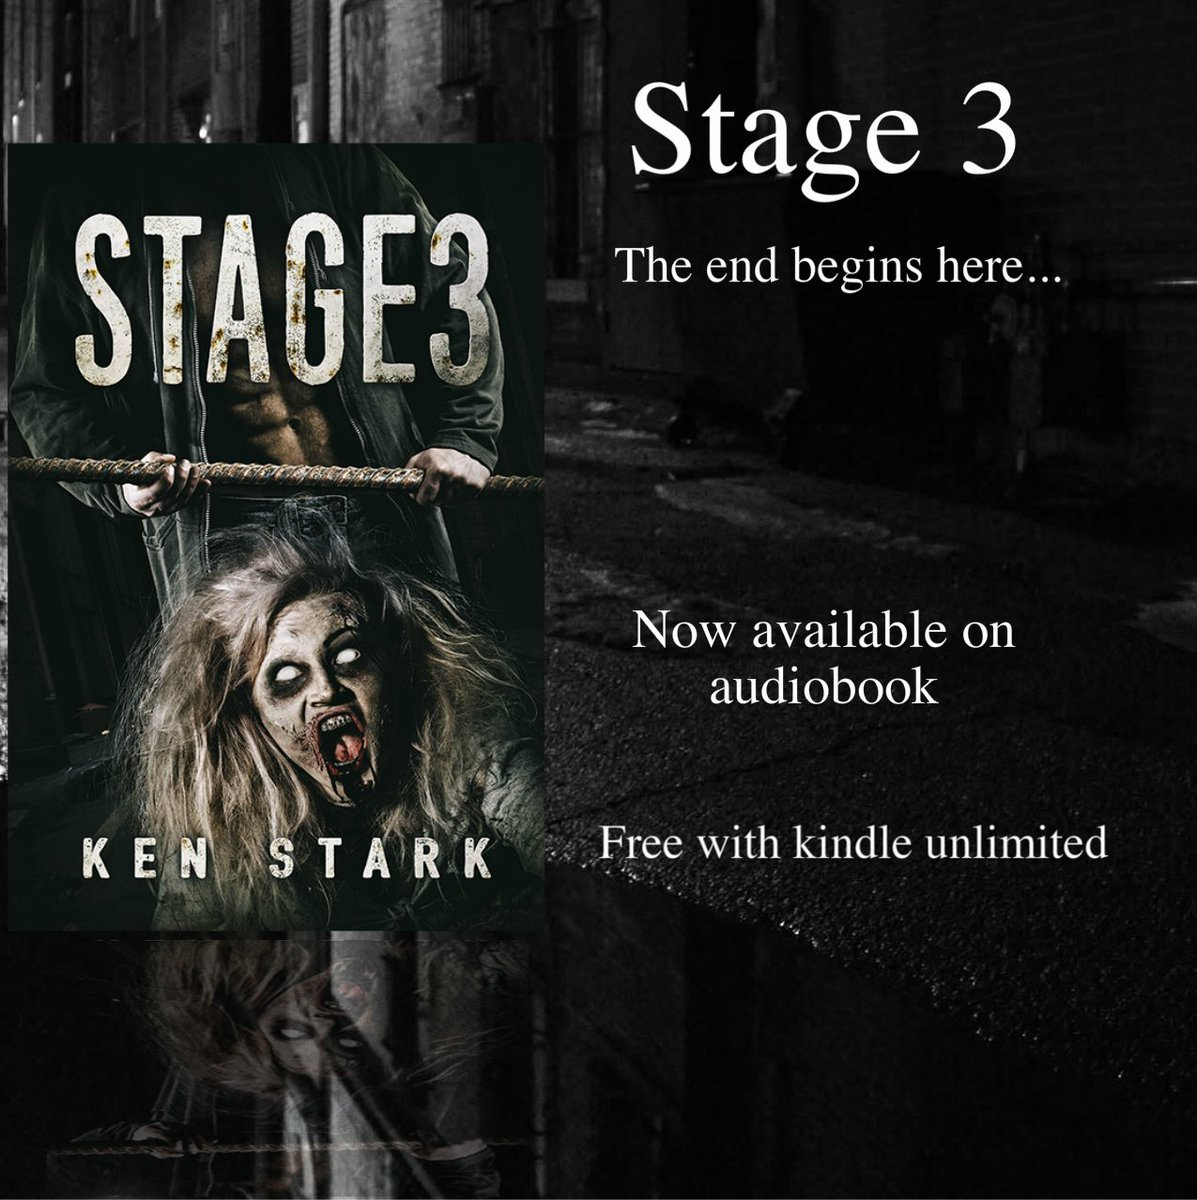 Sounds of a struggle echoed out of the darkness. Shouts, curses, then a shrill, frantic scream. #horror #zombies  https://www. amazon.com/Stage-3-Post-A pocalyptic-Thriller-ebook/dp/B01CYITYOS &nbsp; … <br>http://pic.twitter.com/KsJ65rPzGO